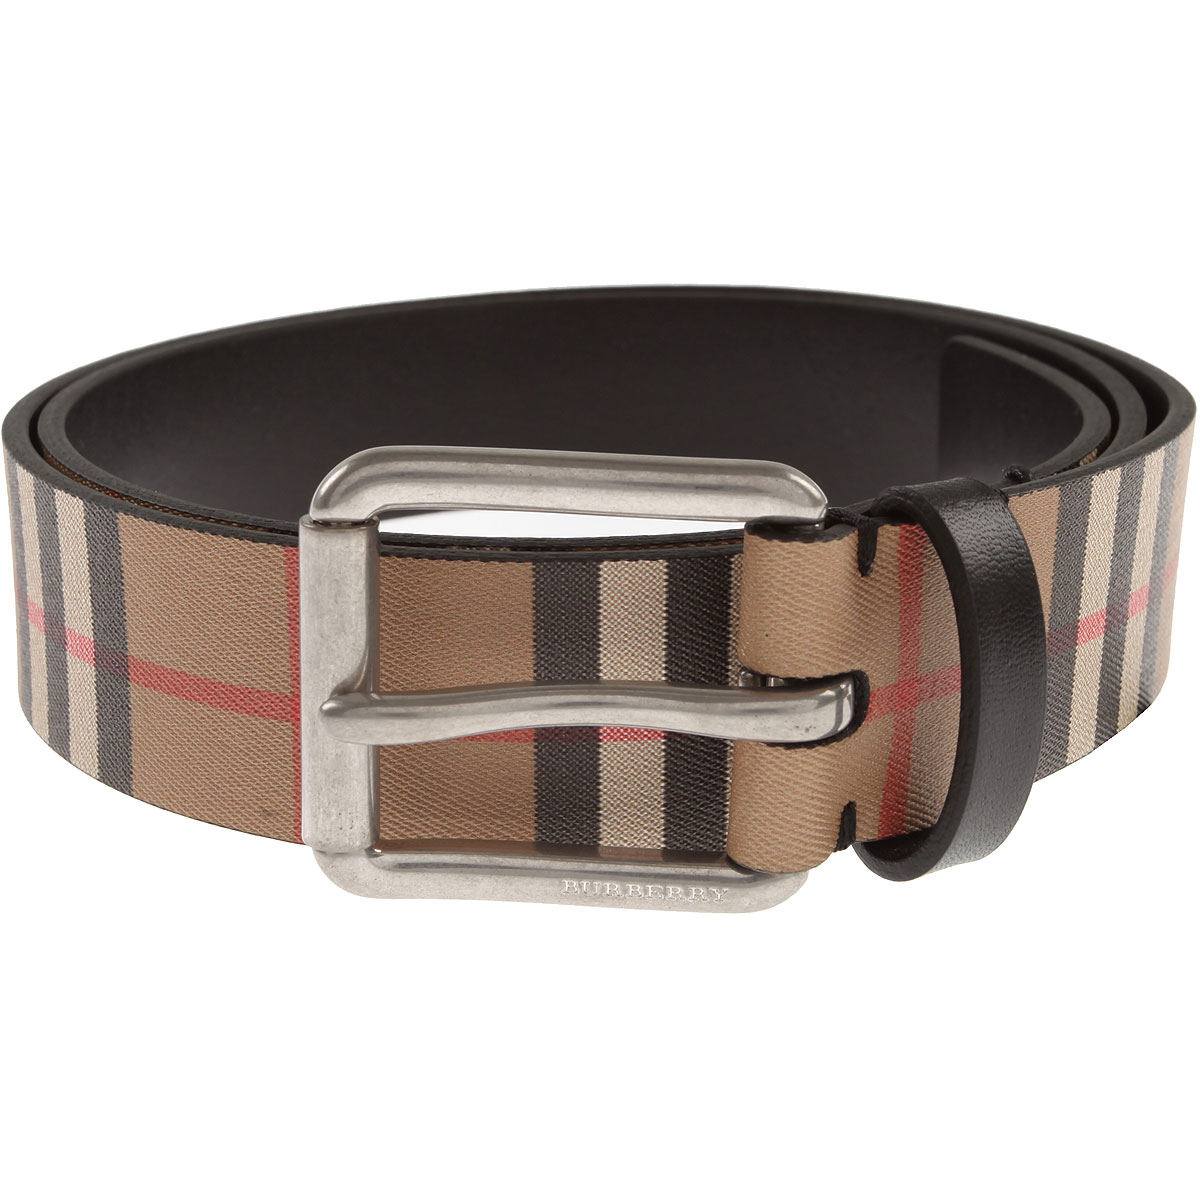 Image of Burberry Belts, Beige, Leather, 2017, 36 38 40 42 44